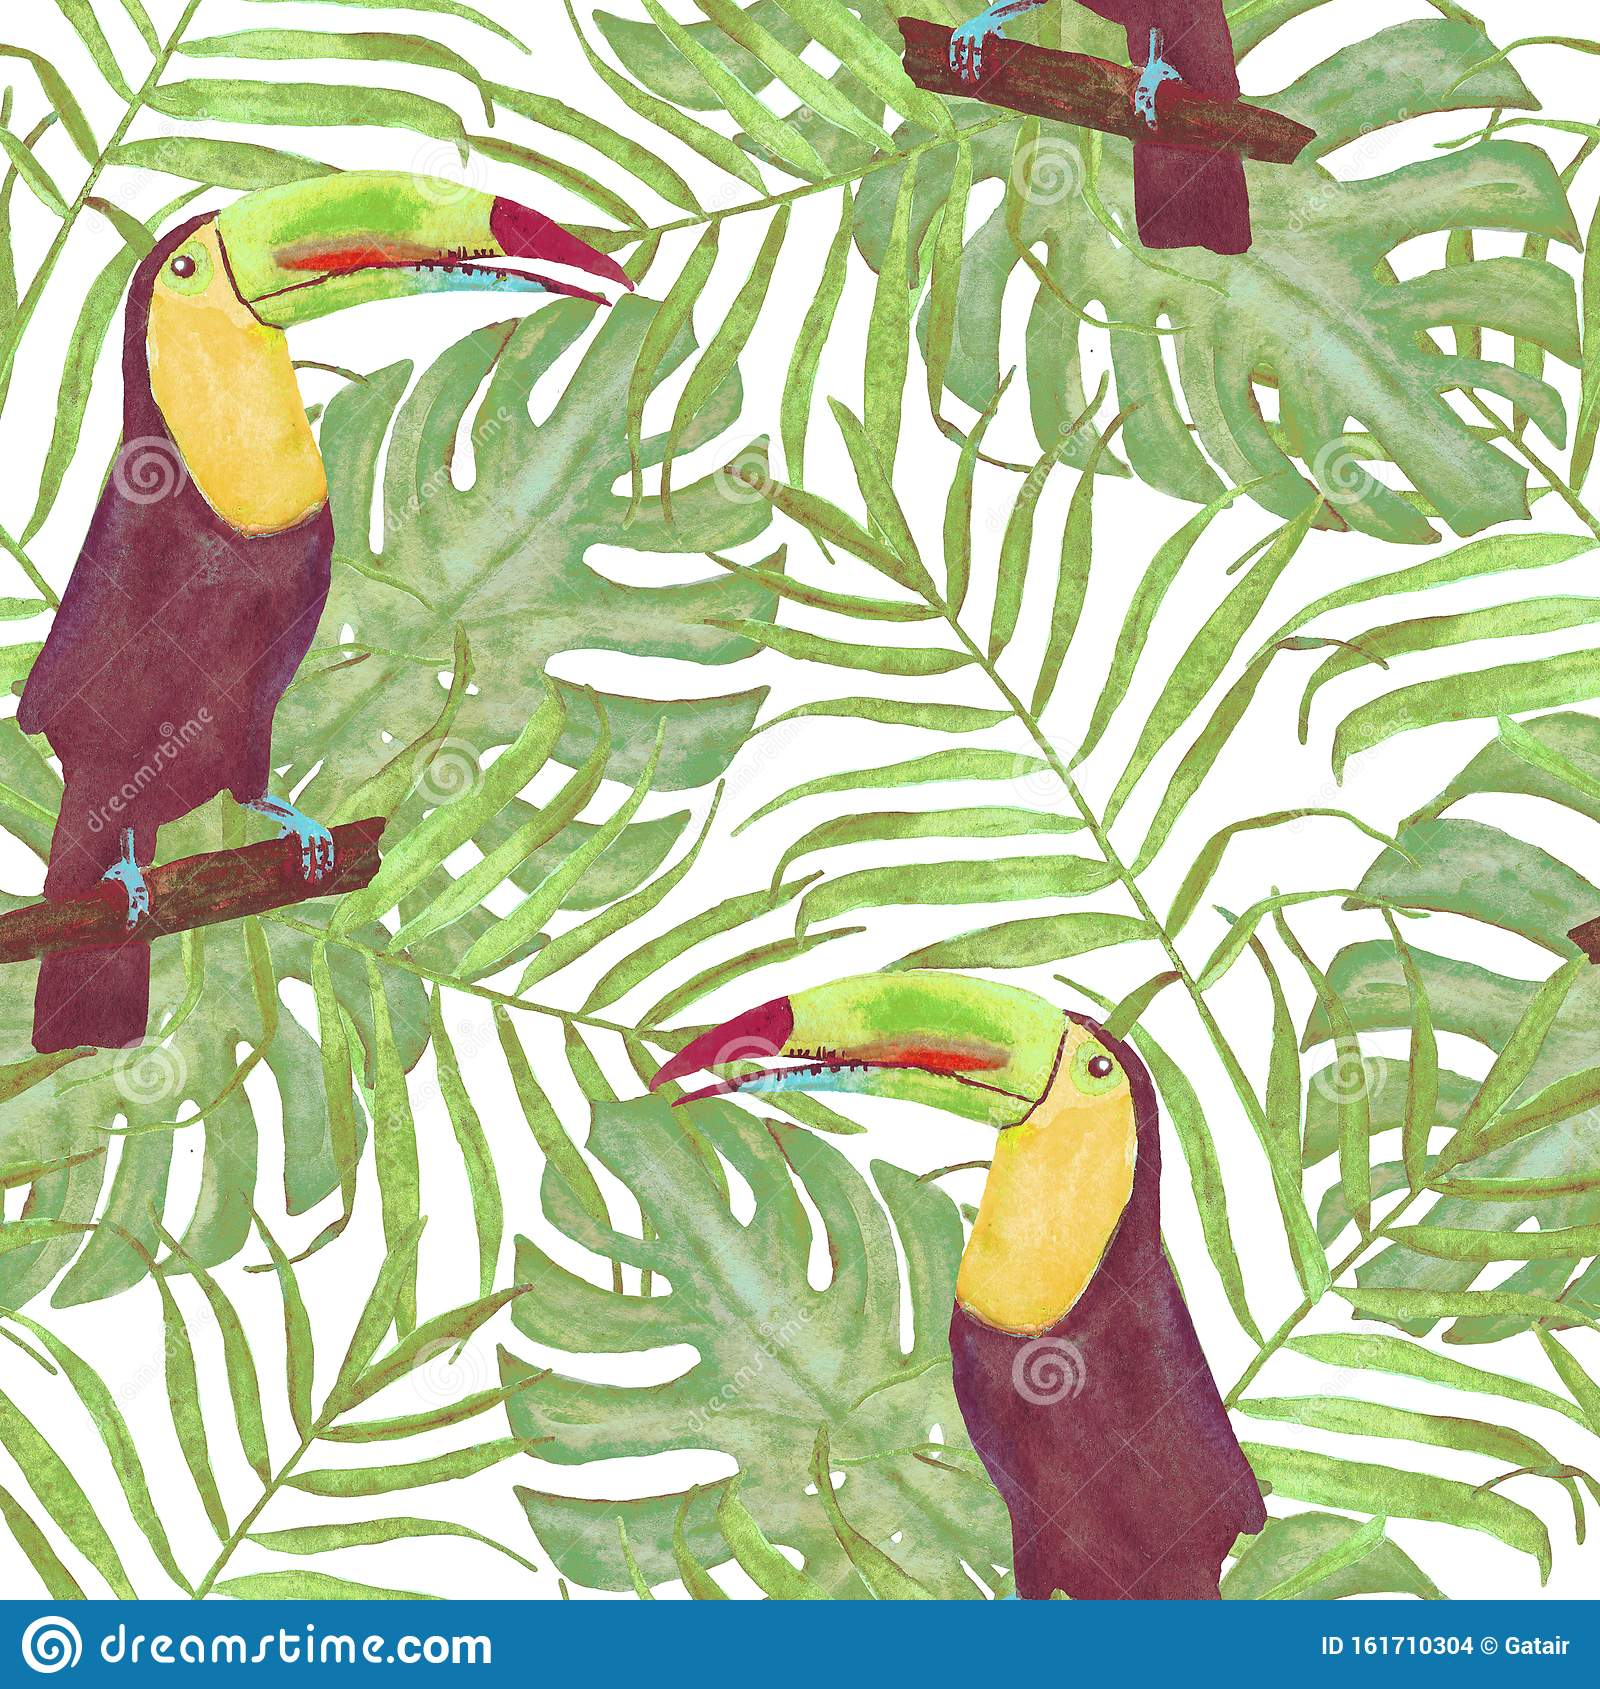 Seamless Watercolor Illustration Of Toucan Bird Tropical Leaves Dense Jungle Pattern With Tropic Summertime Motif Palm Leaves Stock Illustration Illustration Of Monstera Parrot 161710304 Find images of tropical leaves. dreamstime com